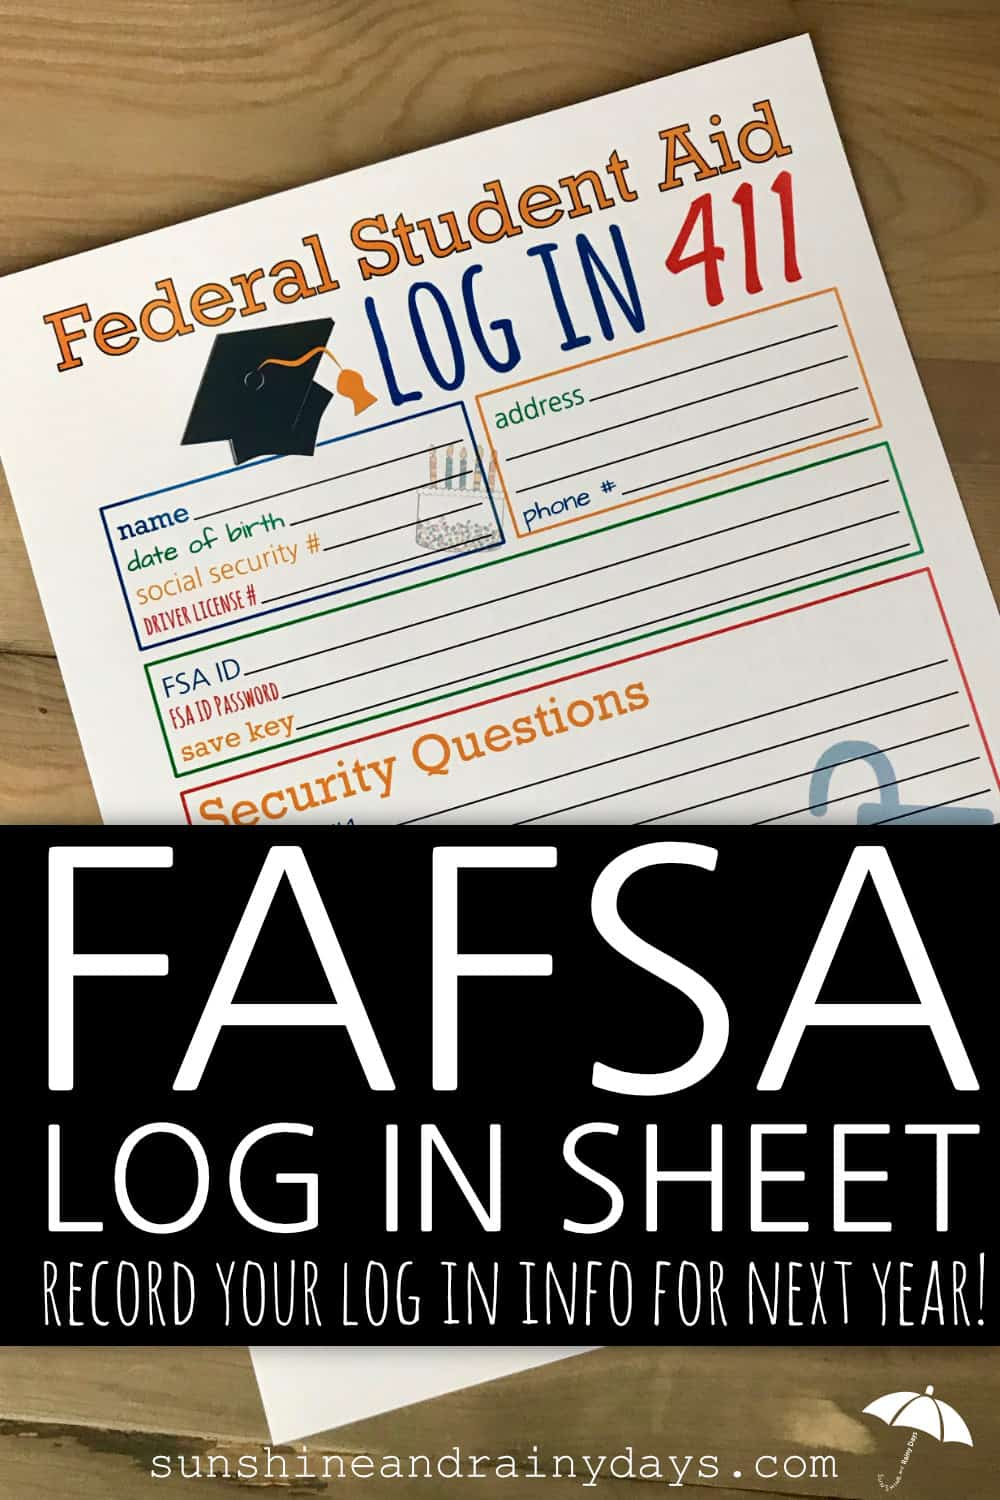 Federal Student Aid Login Sheet